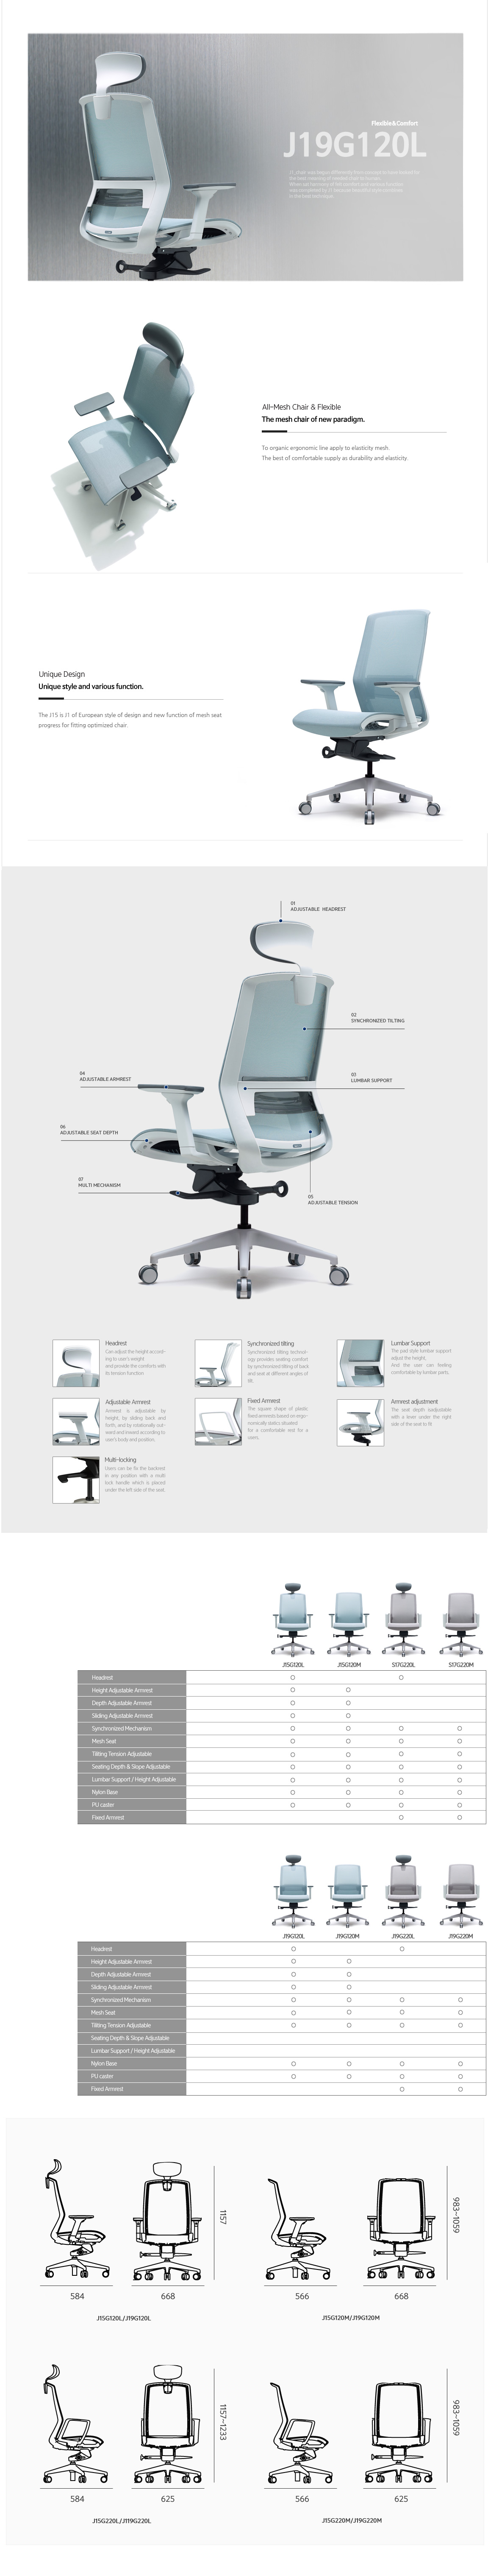 Luxdezine Office Chairs Furniture J19G120L